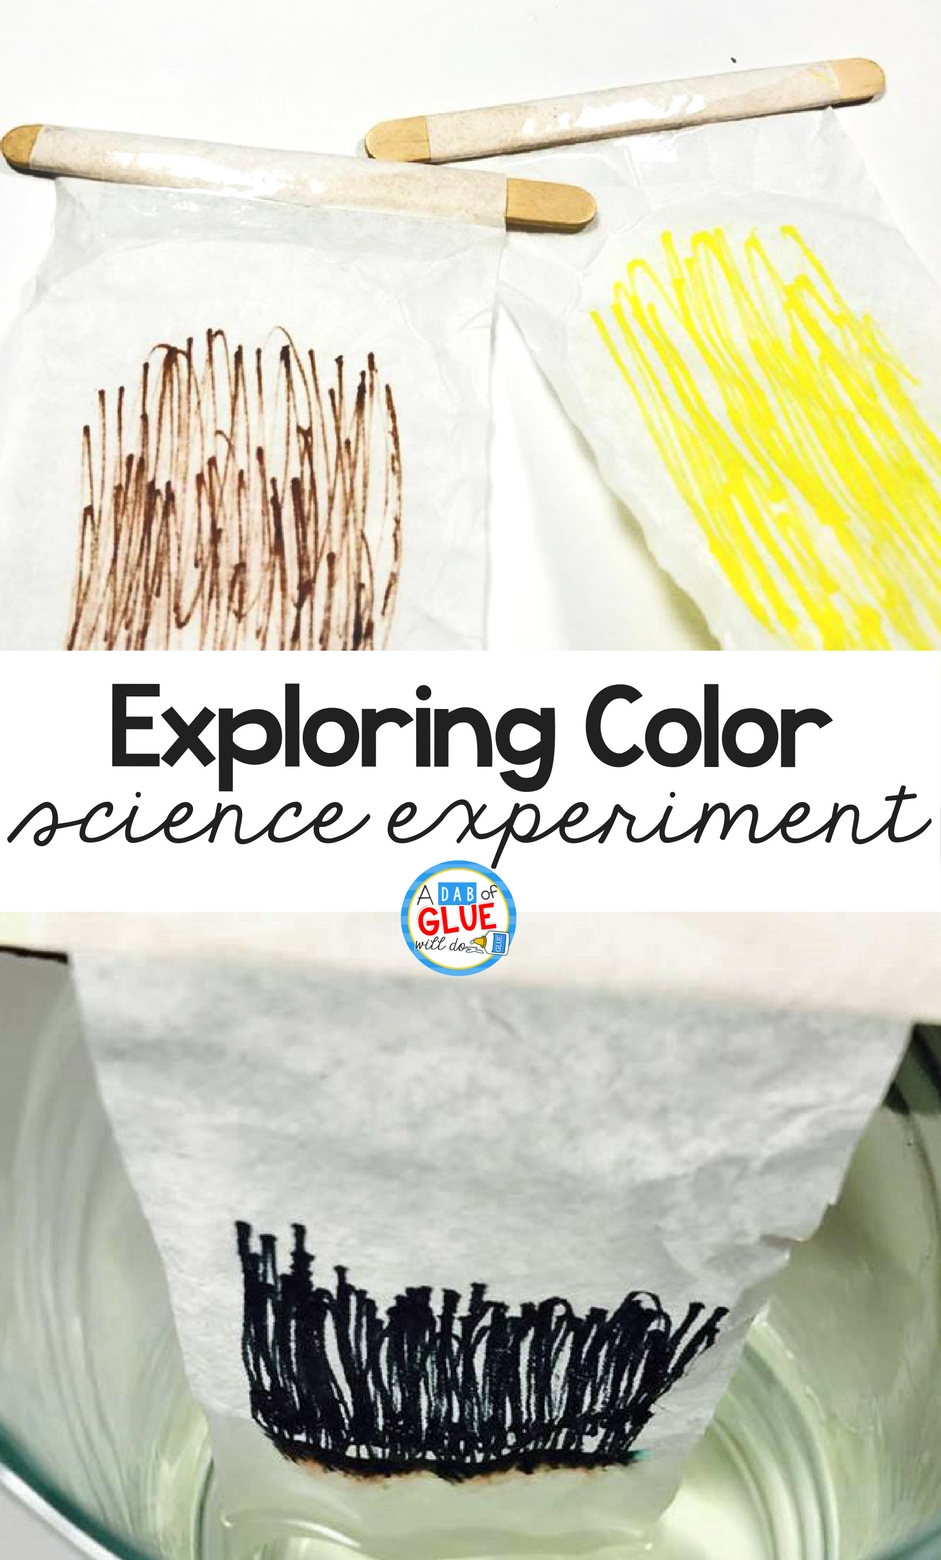 Dive into this fun color exploration experiment with your kindergarteners today! There are just a couple simple materials you need to help your students enjoy the changing of the colors in this simple science experiment.